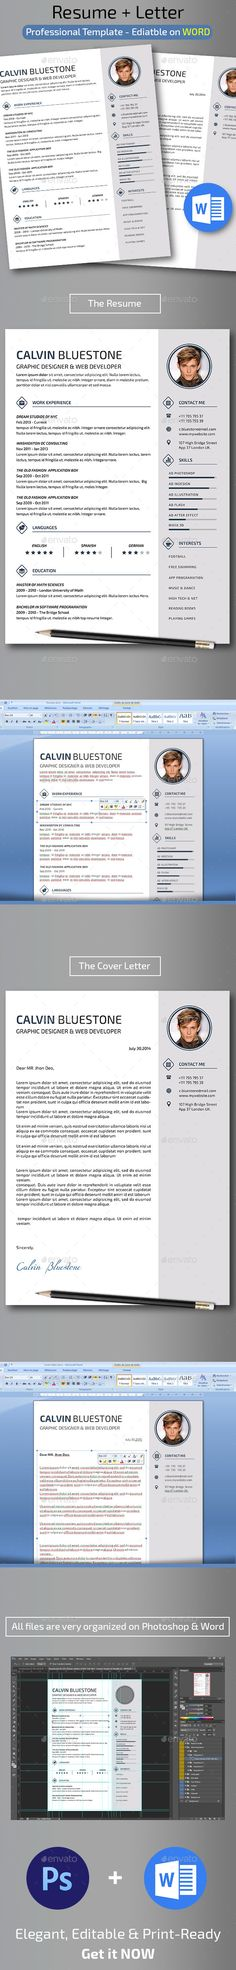 Simple Infographic Resume Infographic resume, Simple and Resume - Resume Now Customer Service